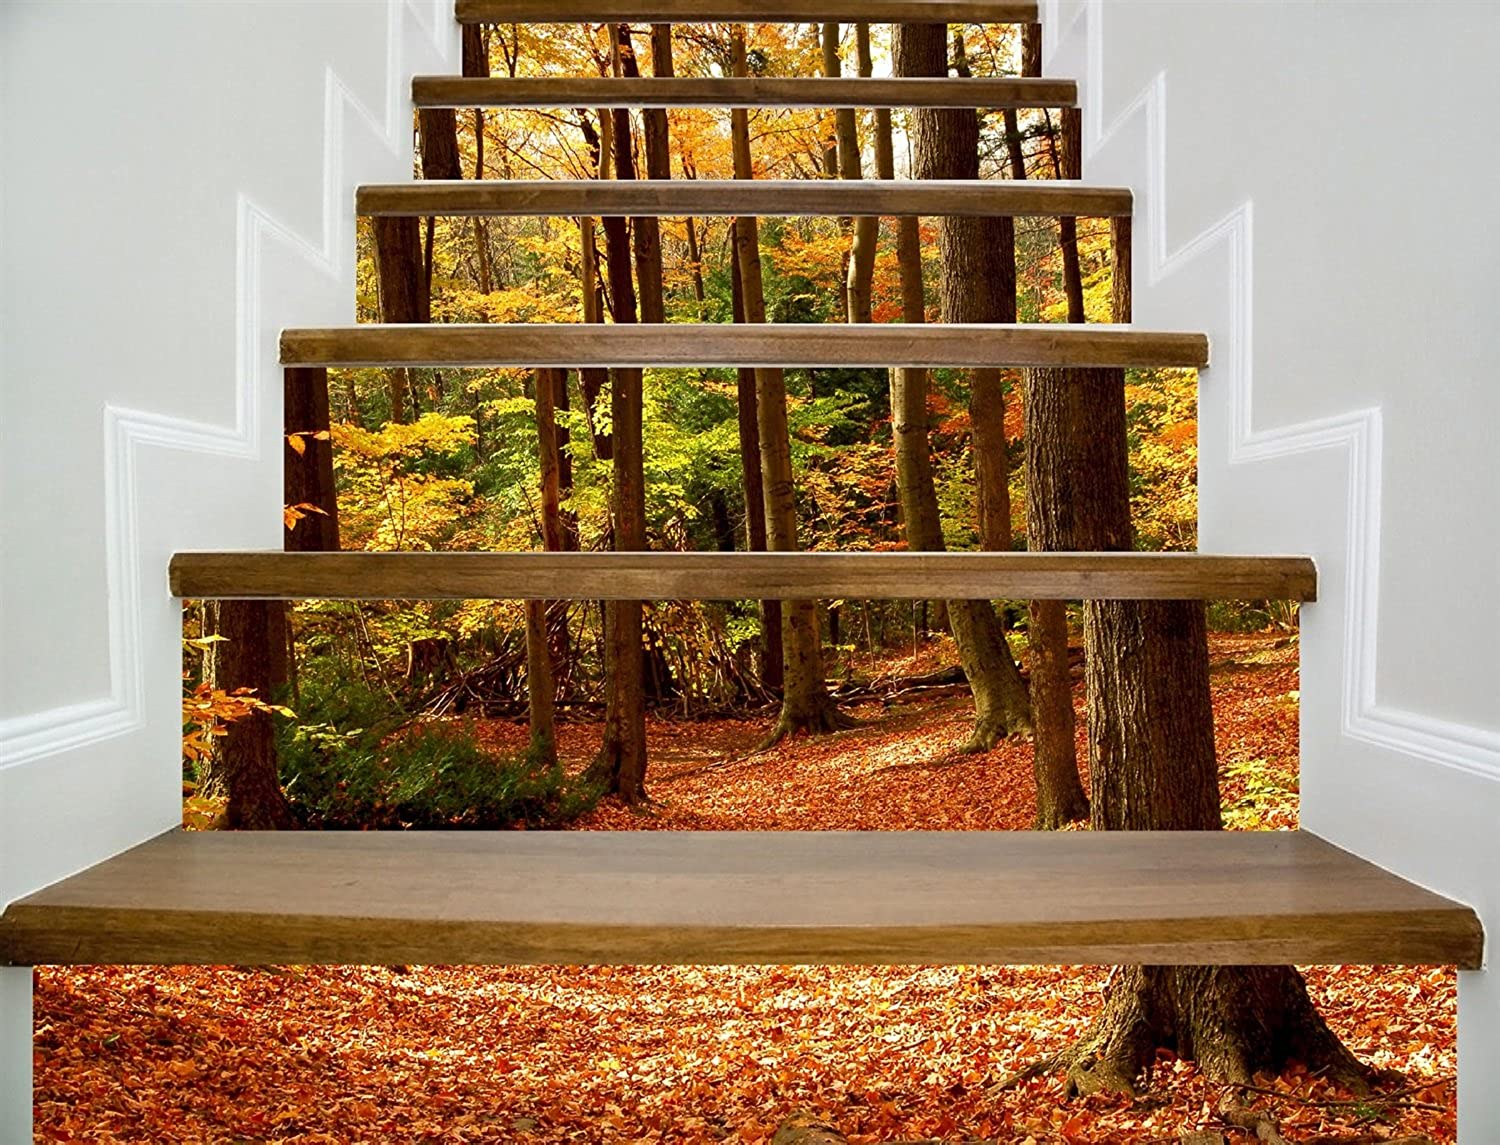 Stairs Self-Adhesive Wallpaper Autumn Leaf Decorating Home Decor 3D Removable DIY Stereo Sticker Modern HD Waterproof Stairs Wallpaper Buy Three Get One